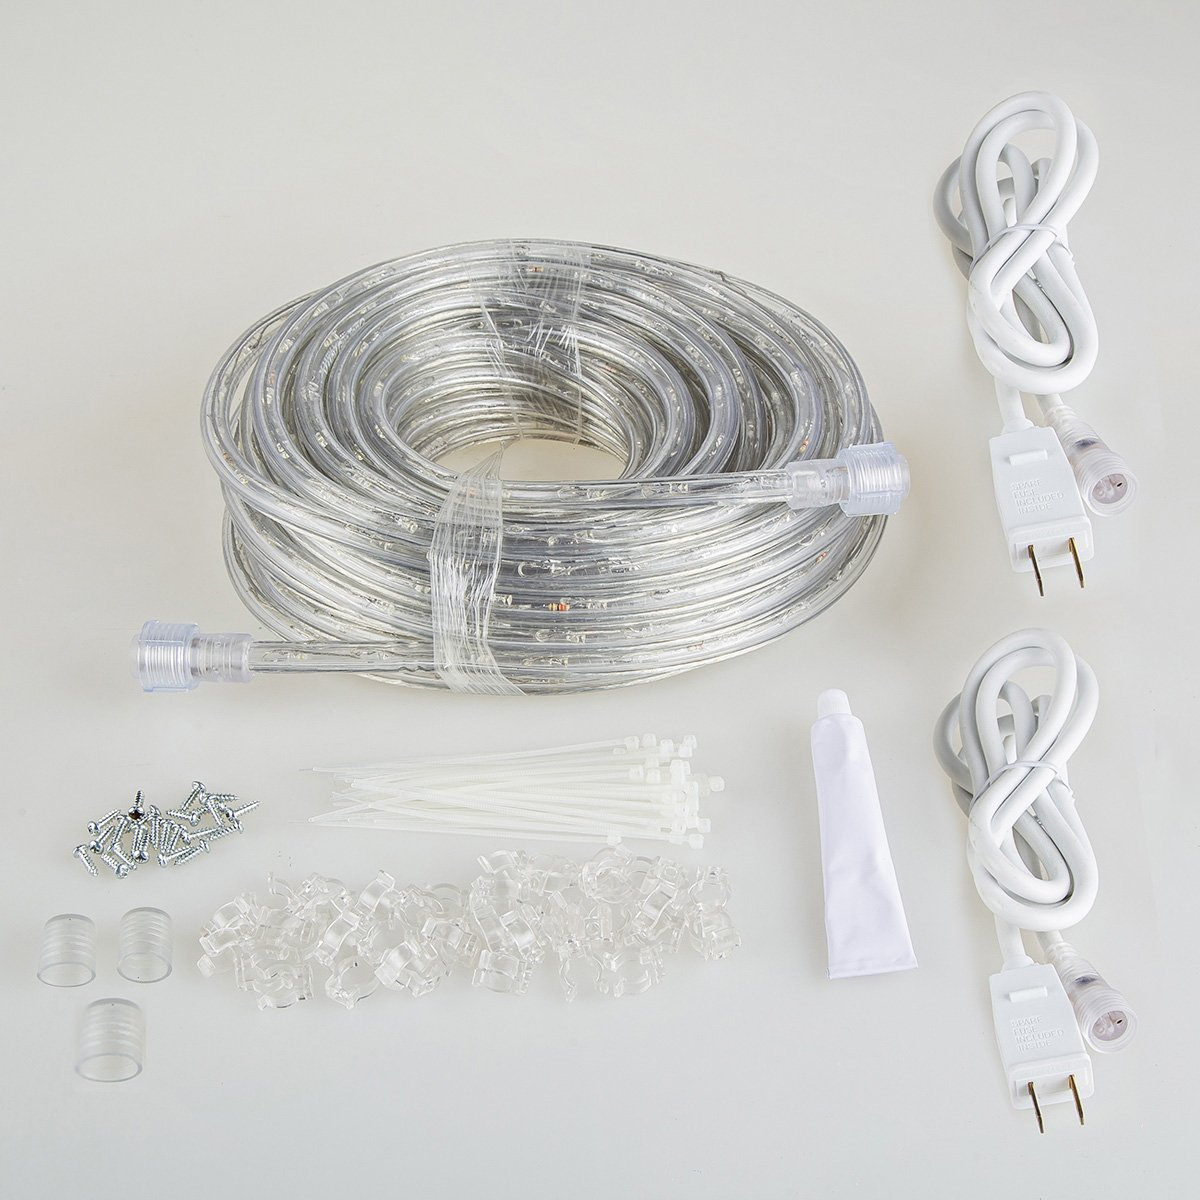 GuoTonG 50ft/15m Plugin Rope Lights, 540 Warm White LEDs, 110V, 2 Wire, Waterproof, Connectable,Power Socket Connector Fuse Holder, Indoor/Outdoor Use, Ideal Backyards, Decorative Lighting